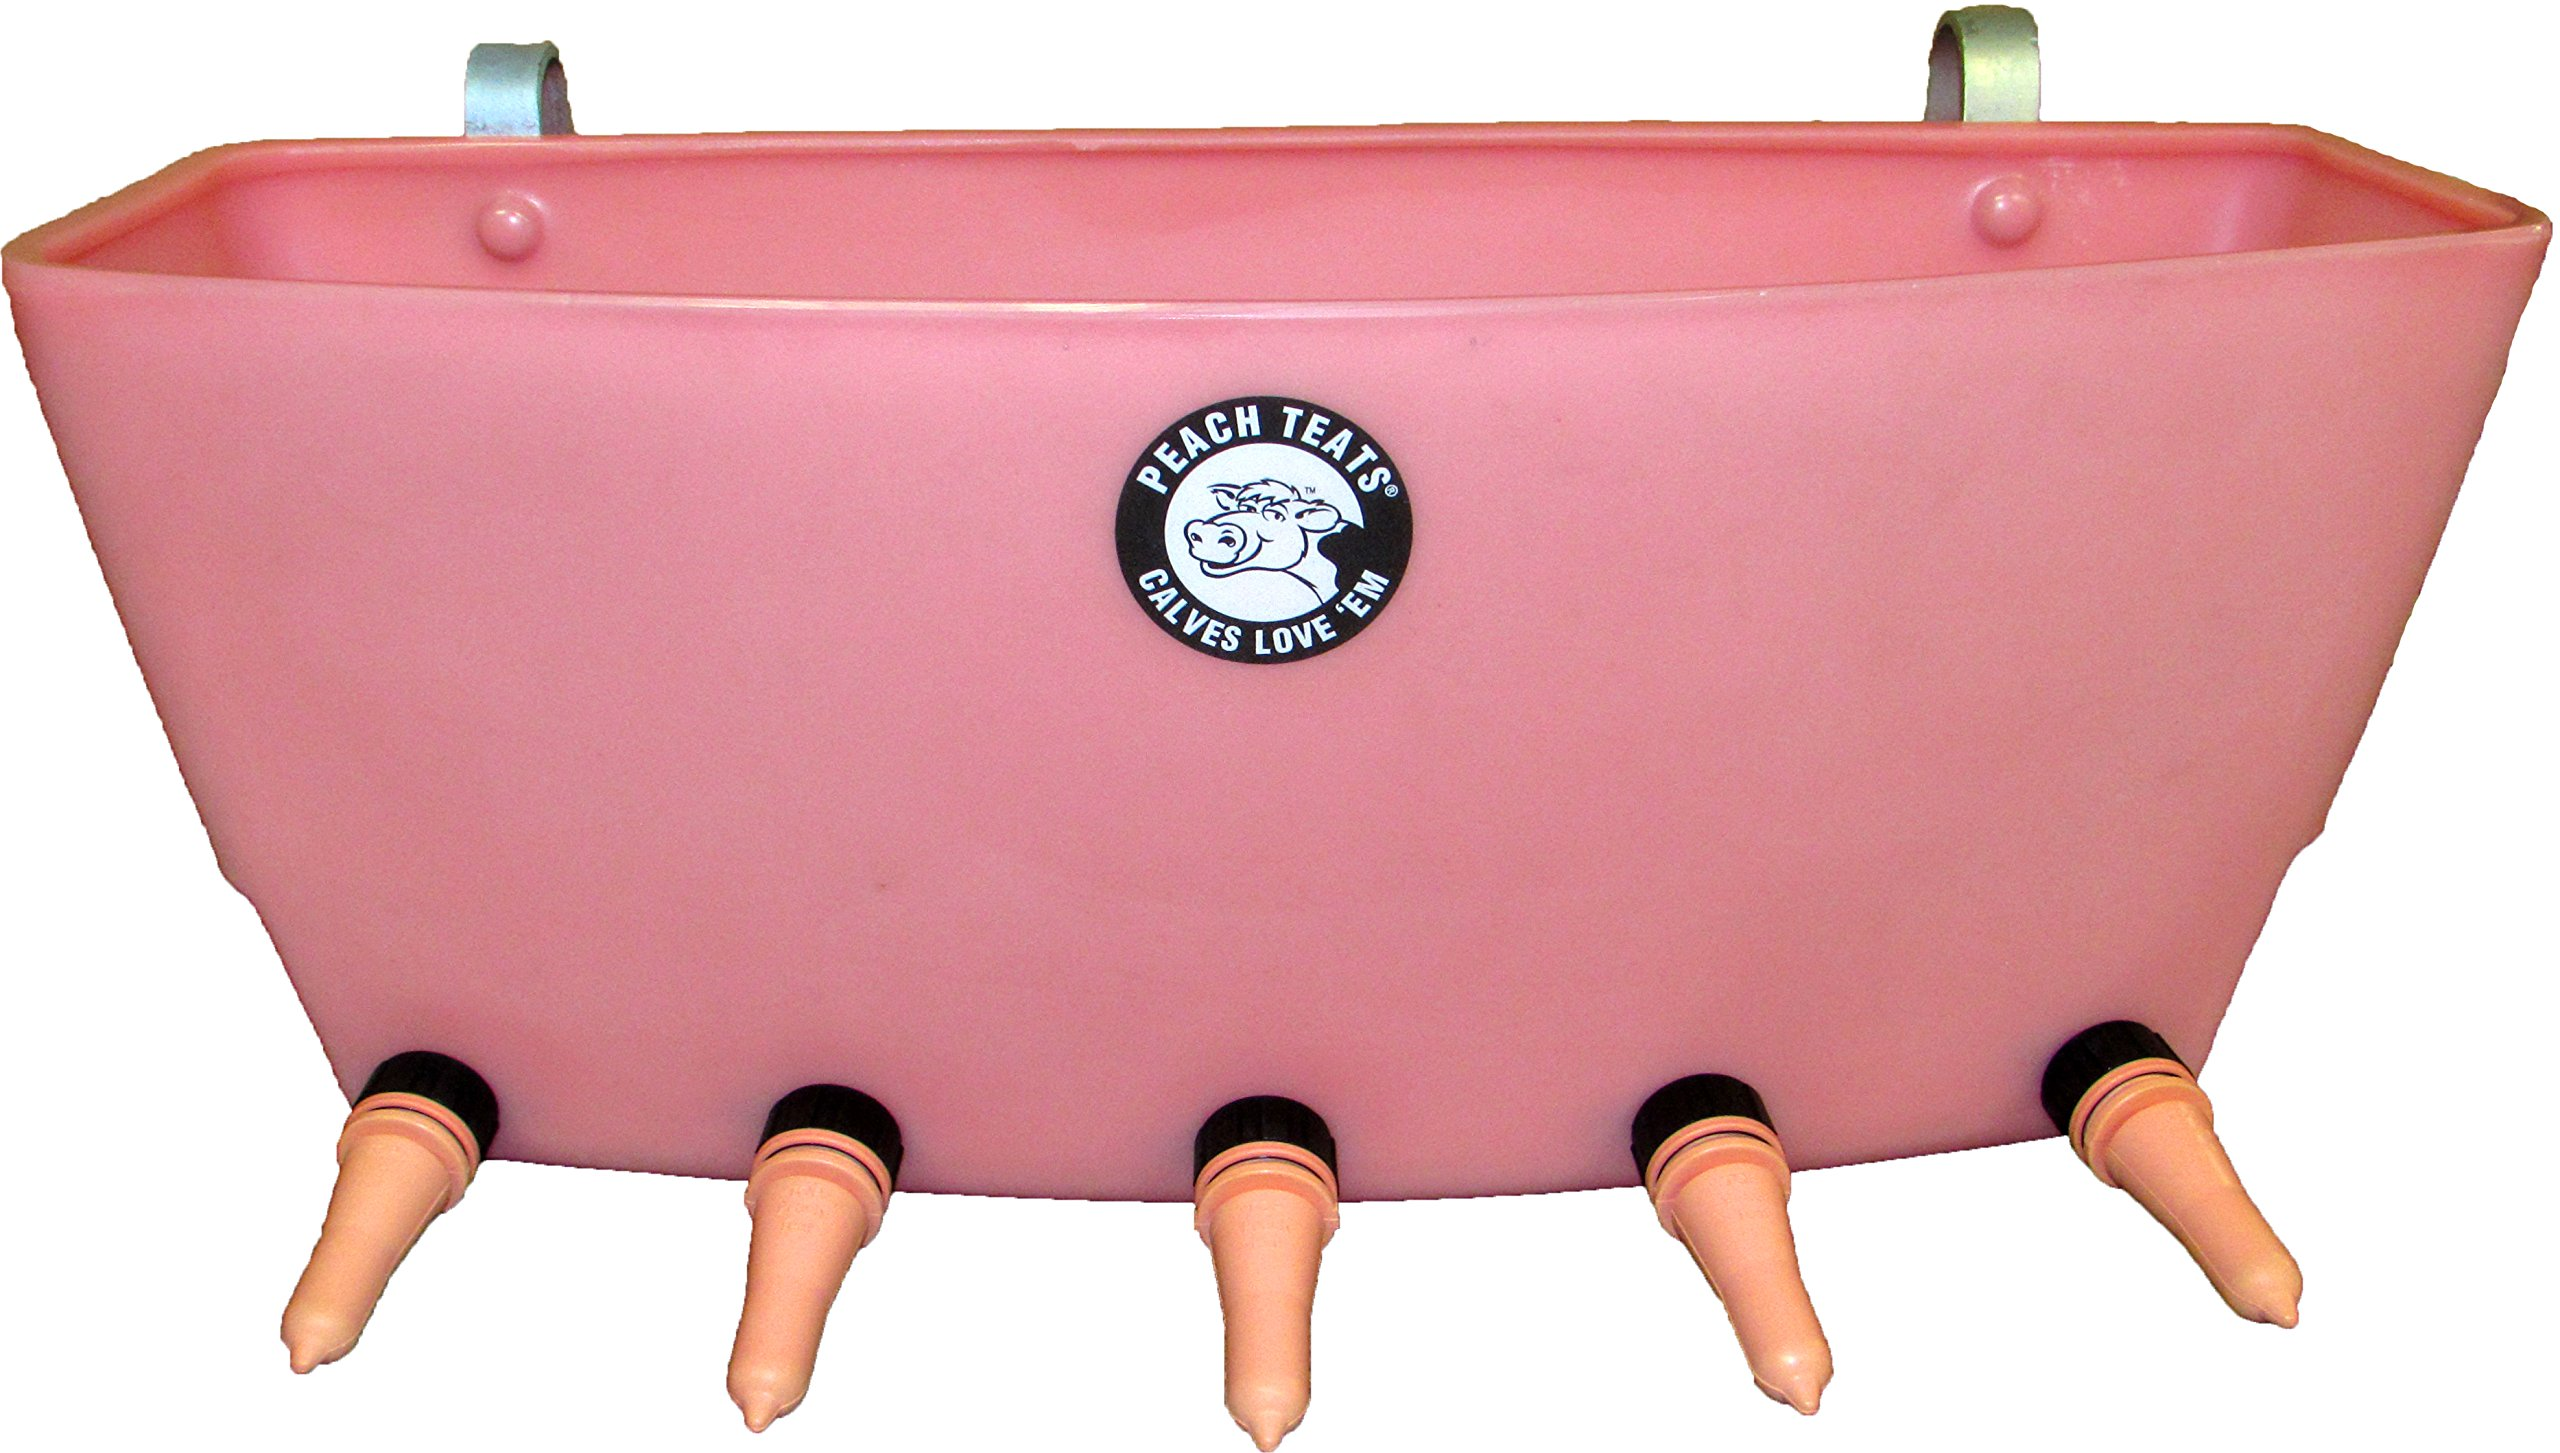 5 Teat Feeder Complete, Pink by Peach Teats